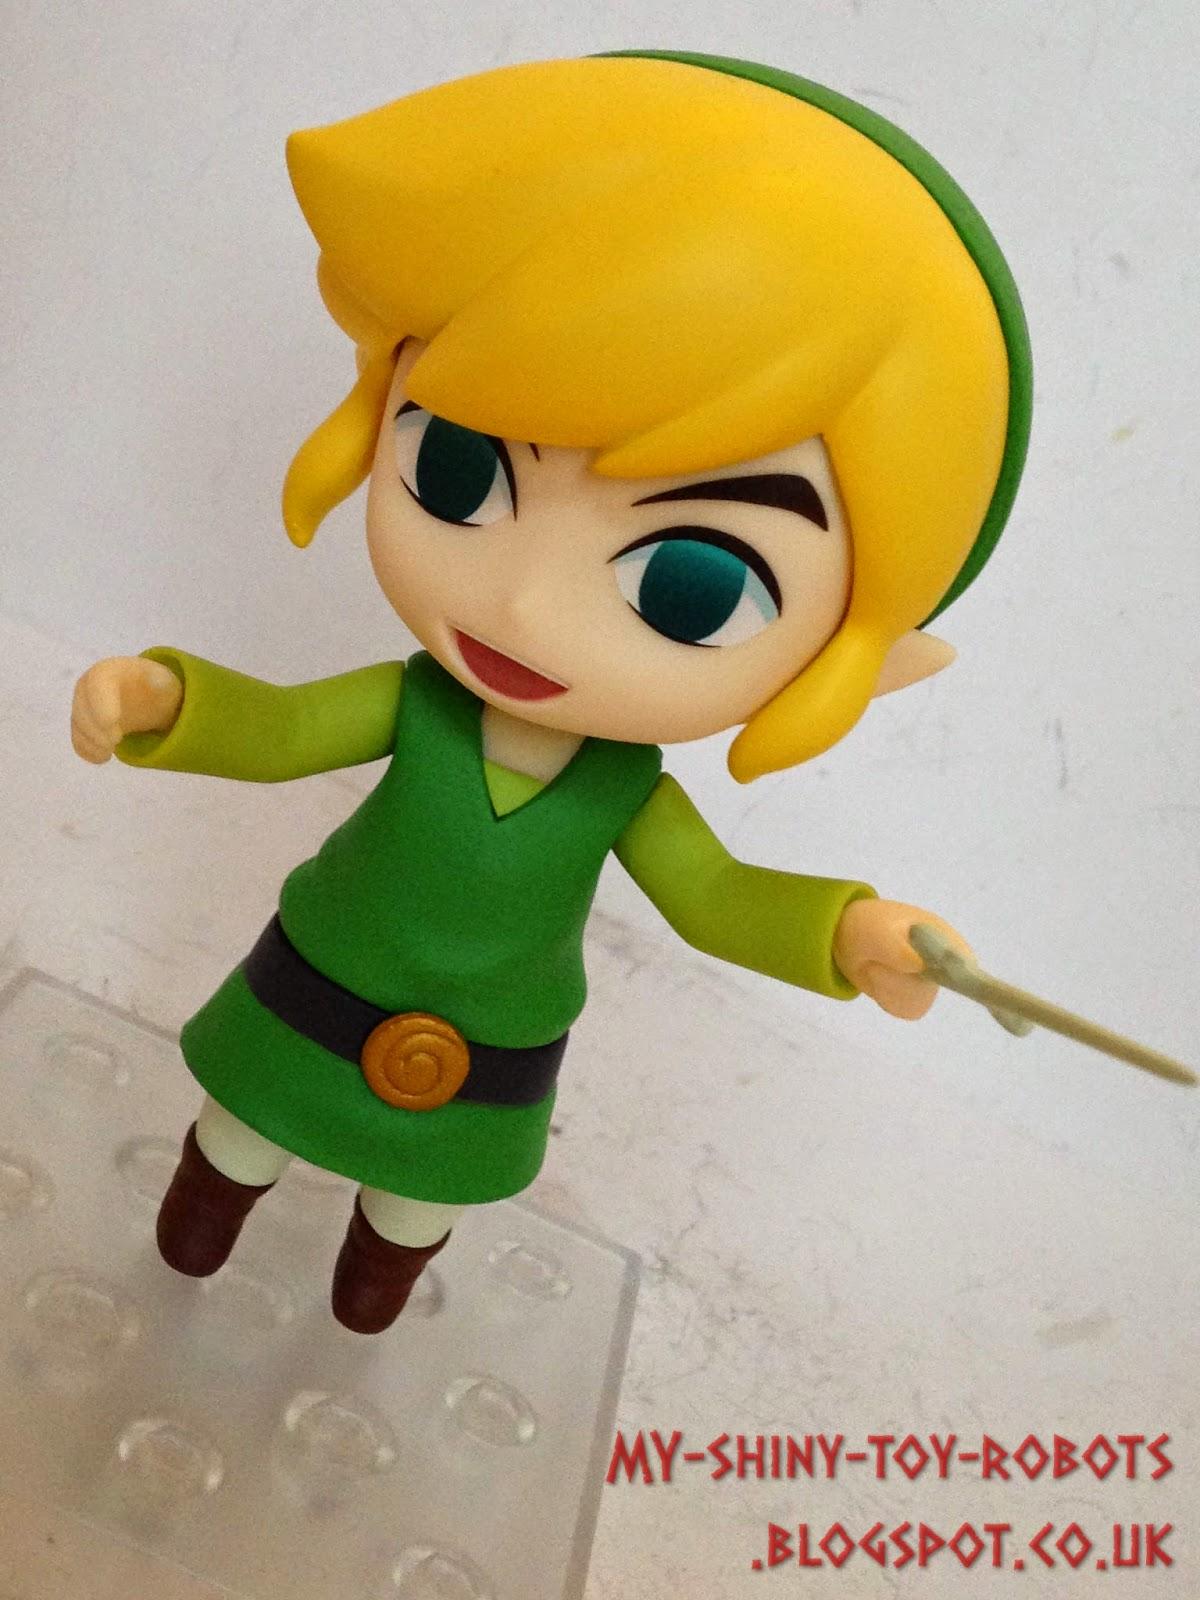 Link with the wind waker